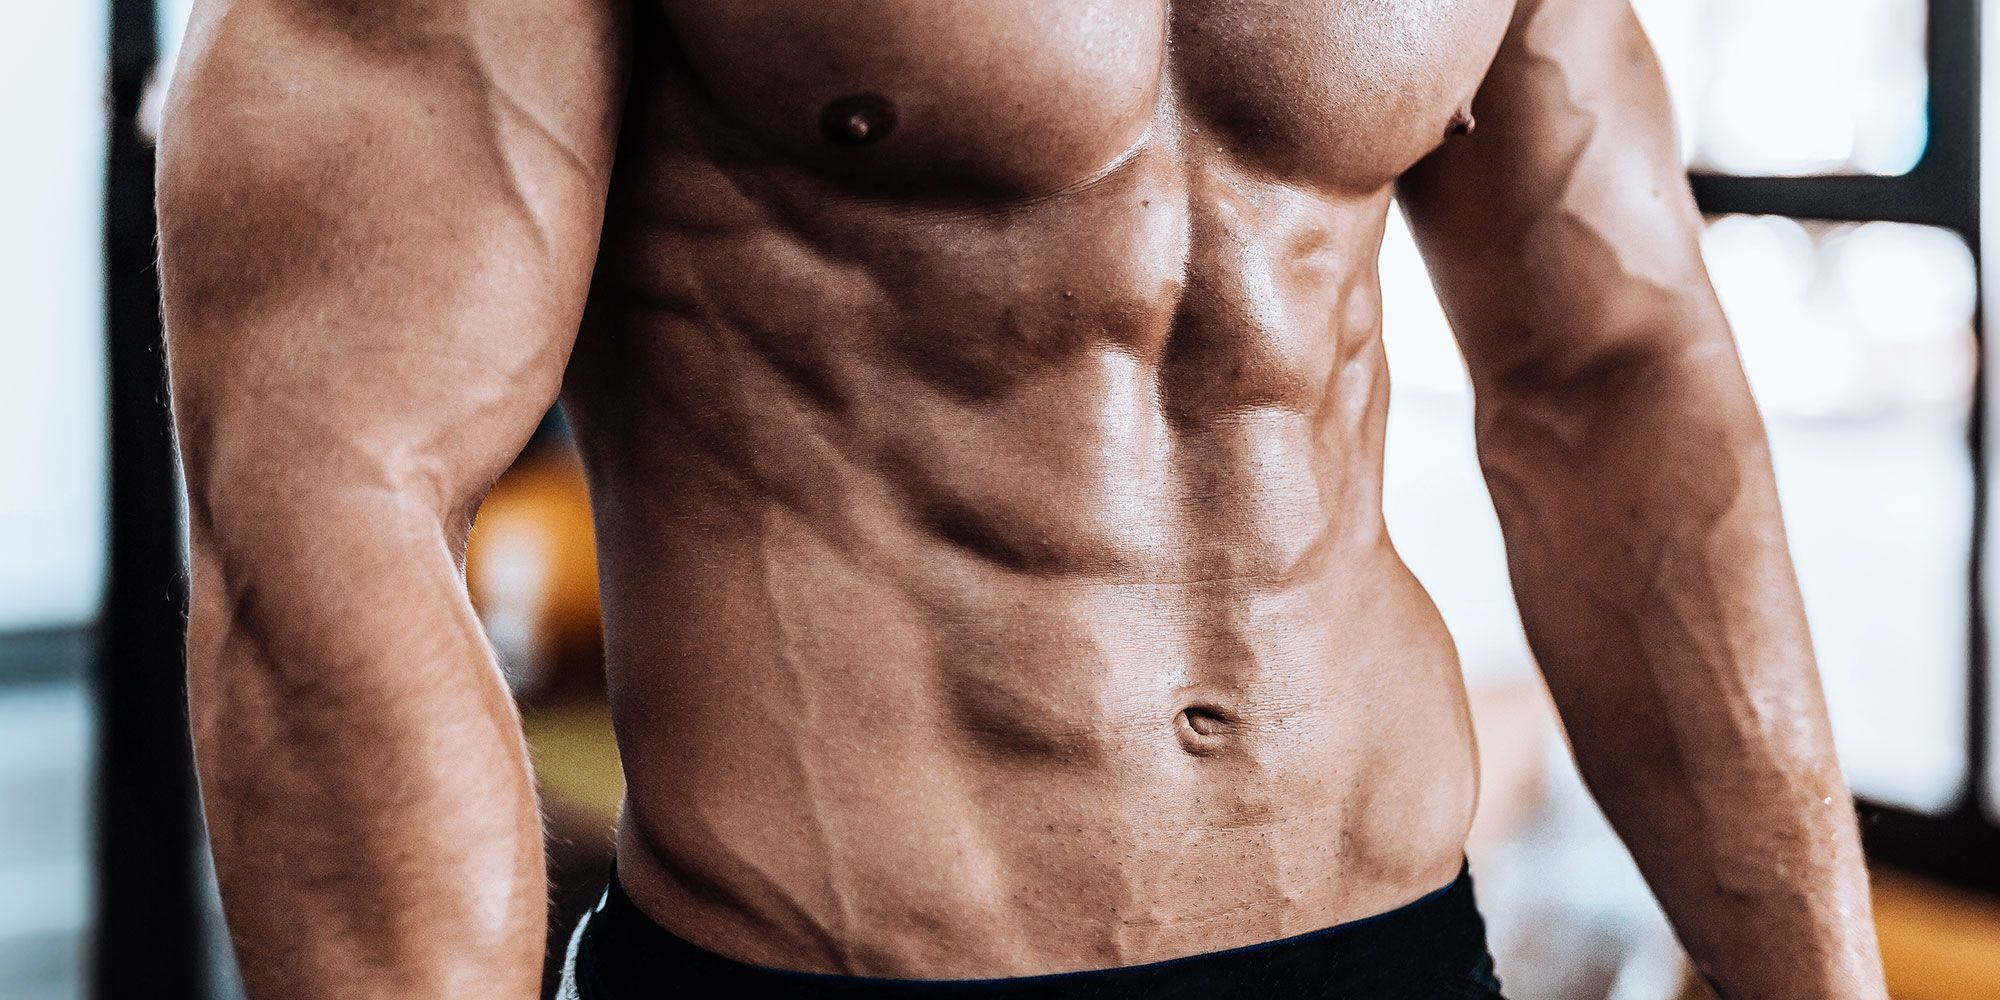 Guys With Six-Pack Abs Share What It's Like to Be Ripped